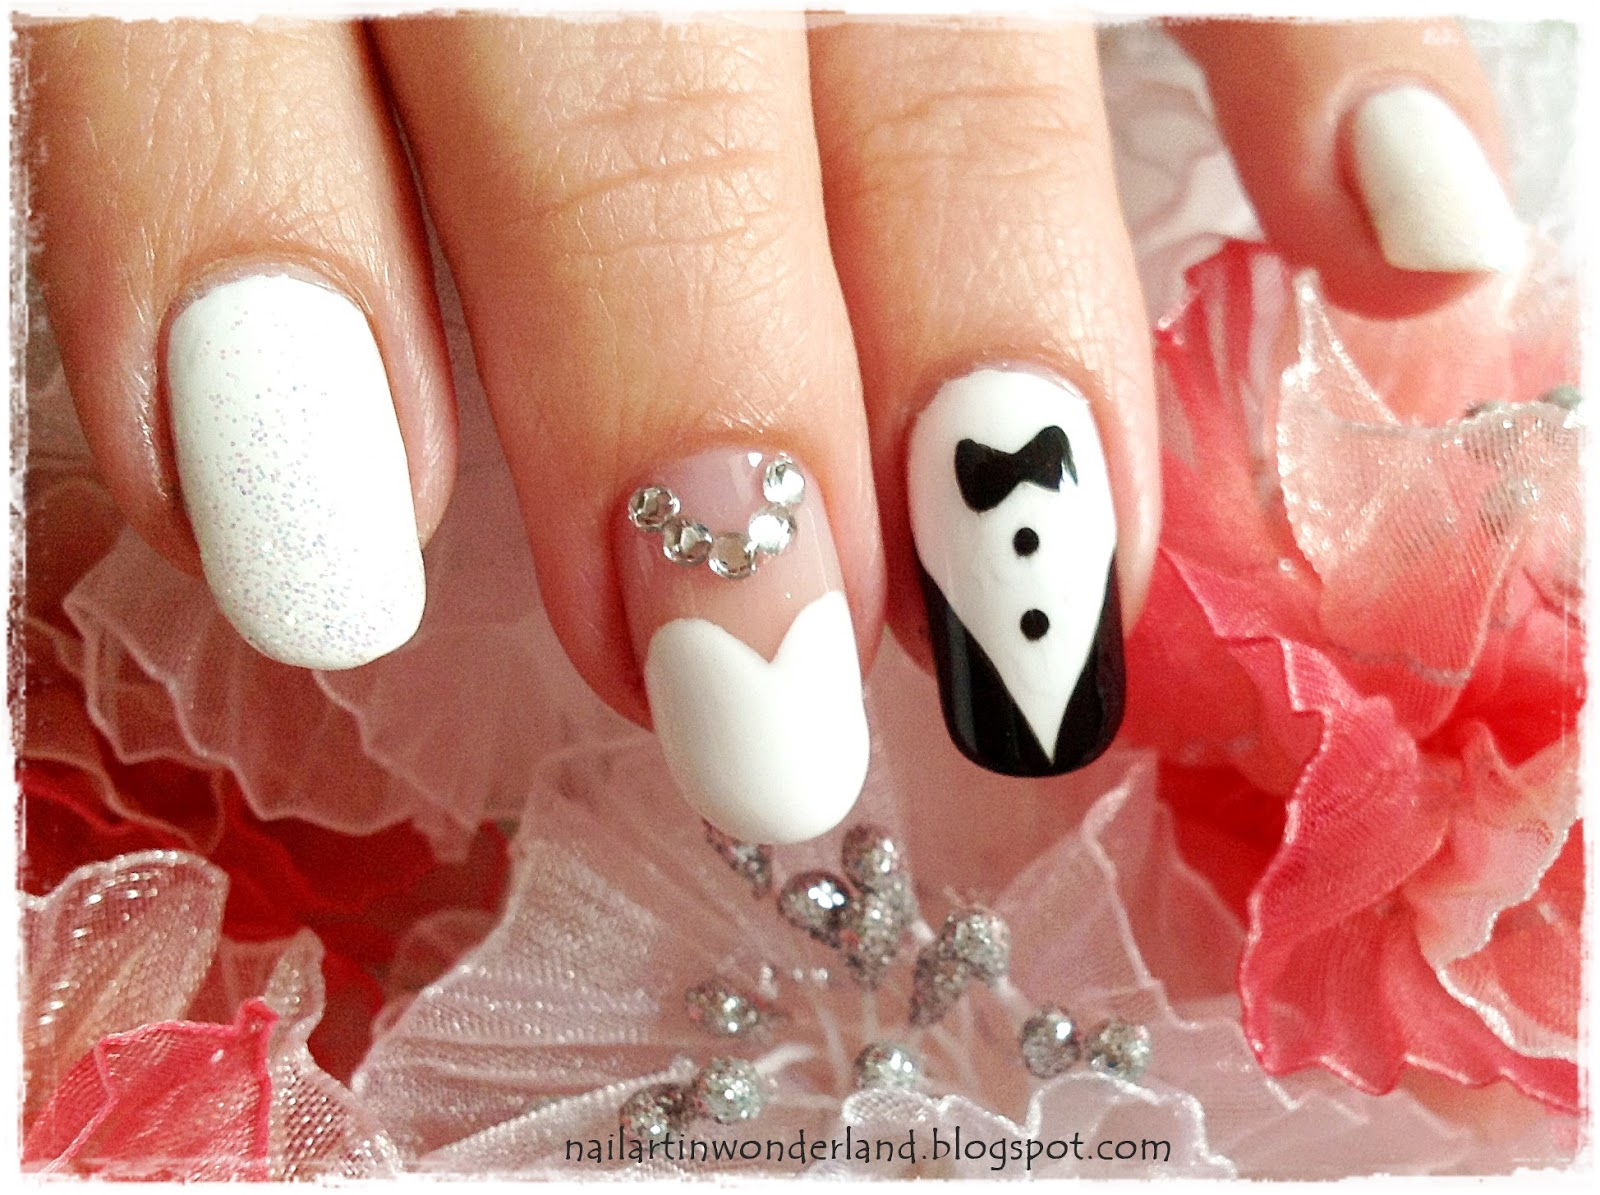 Gelin Damatlı Düğün Tırnak Süslemesi / Wedding Nail Art with Bride and Groom